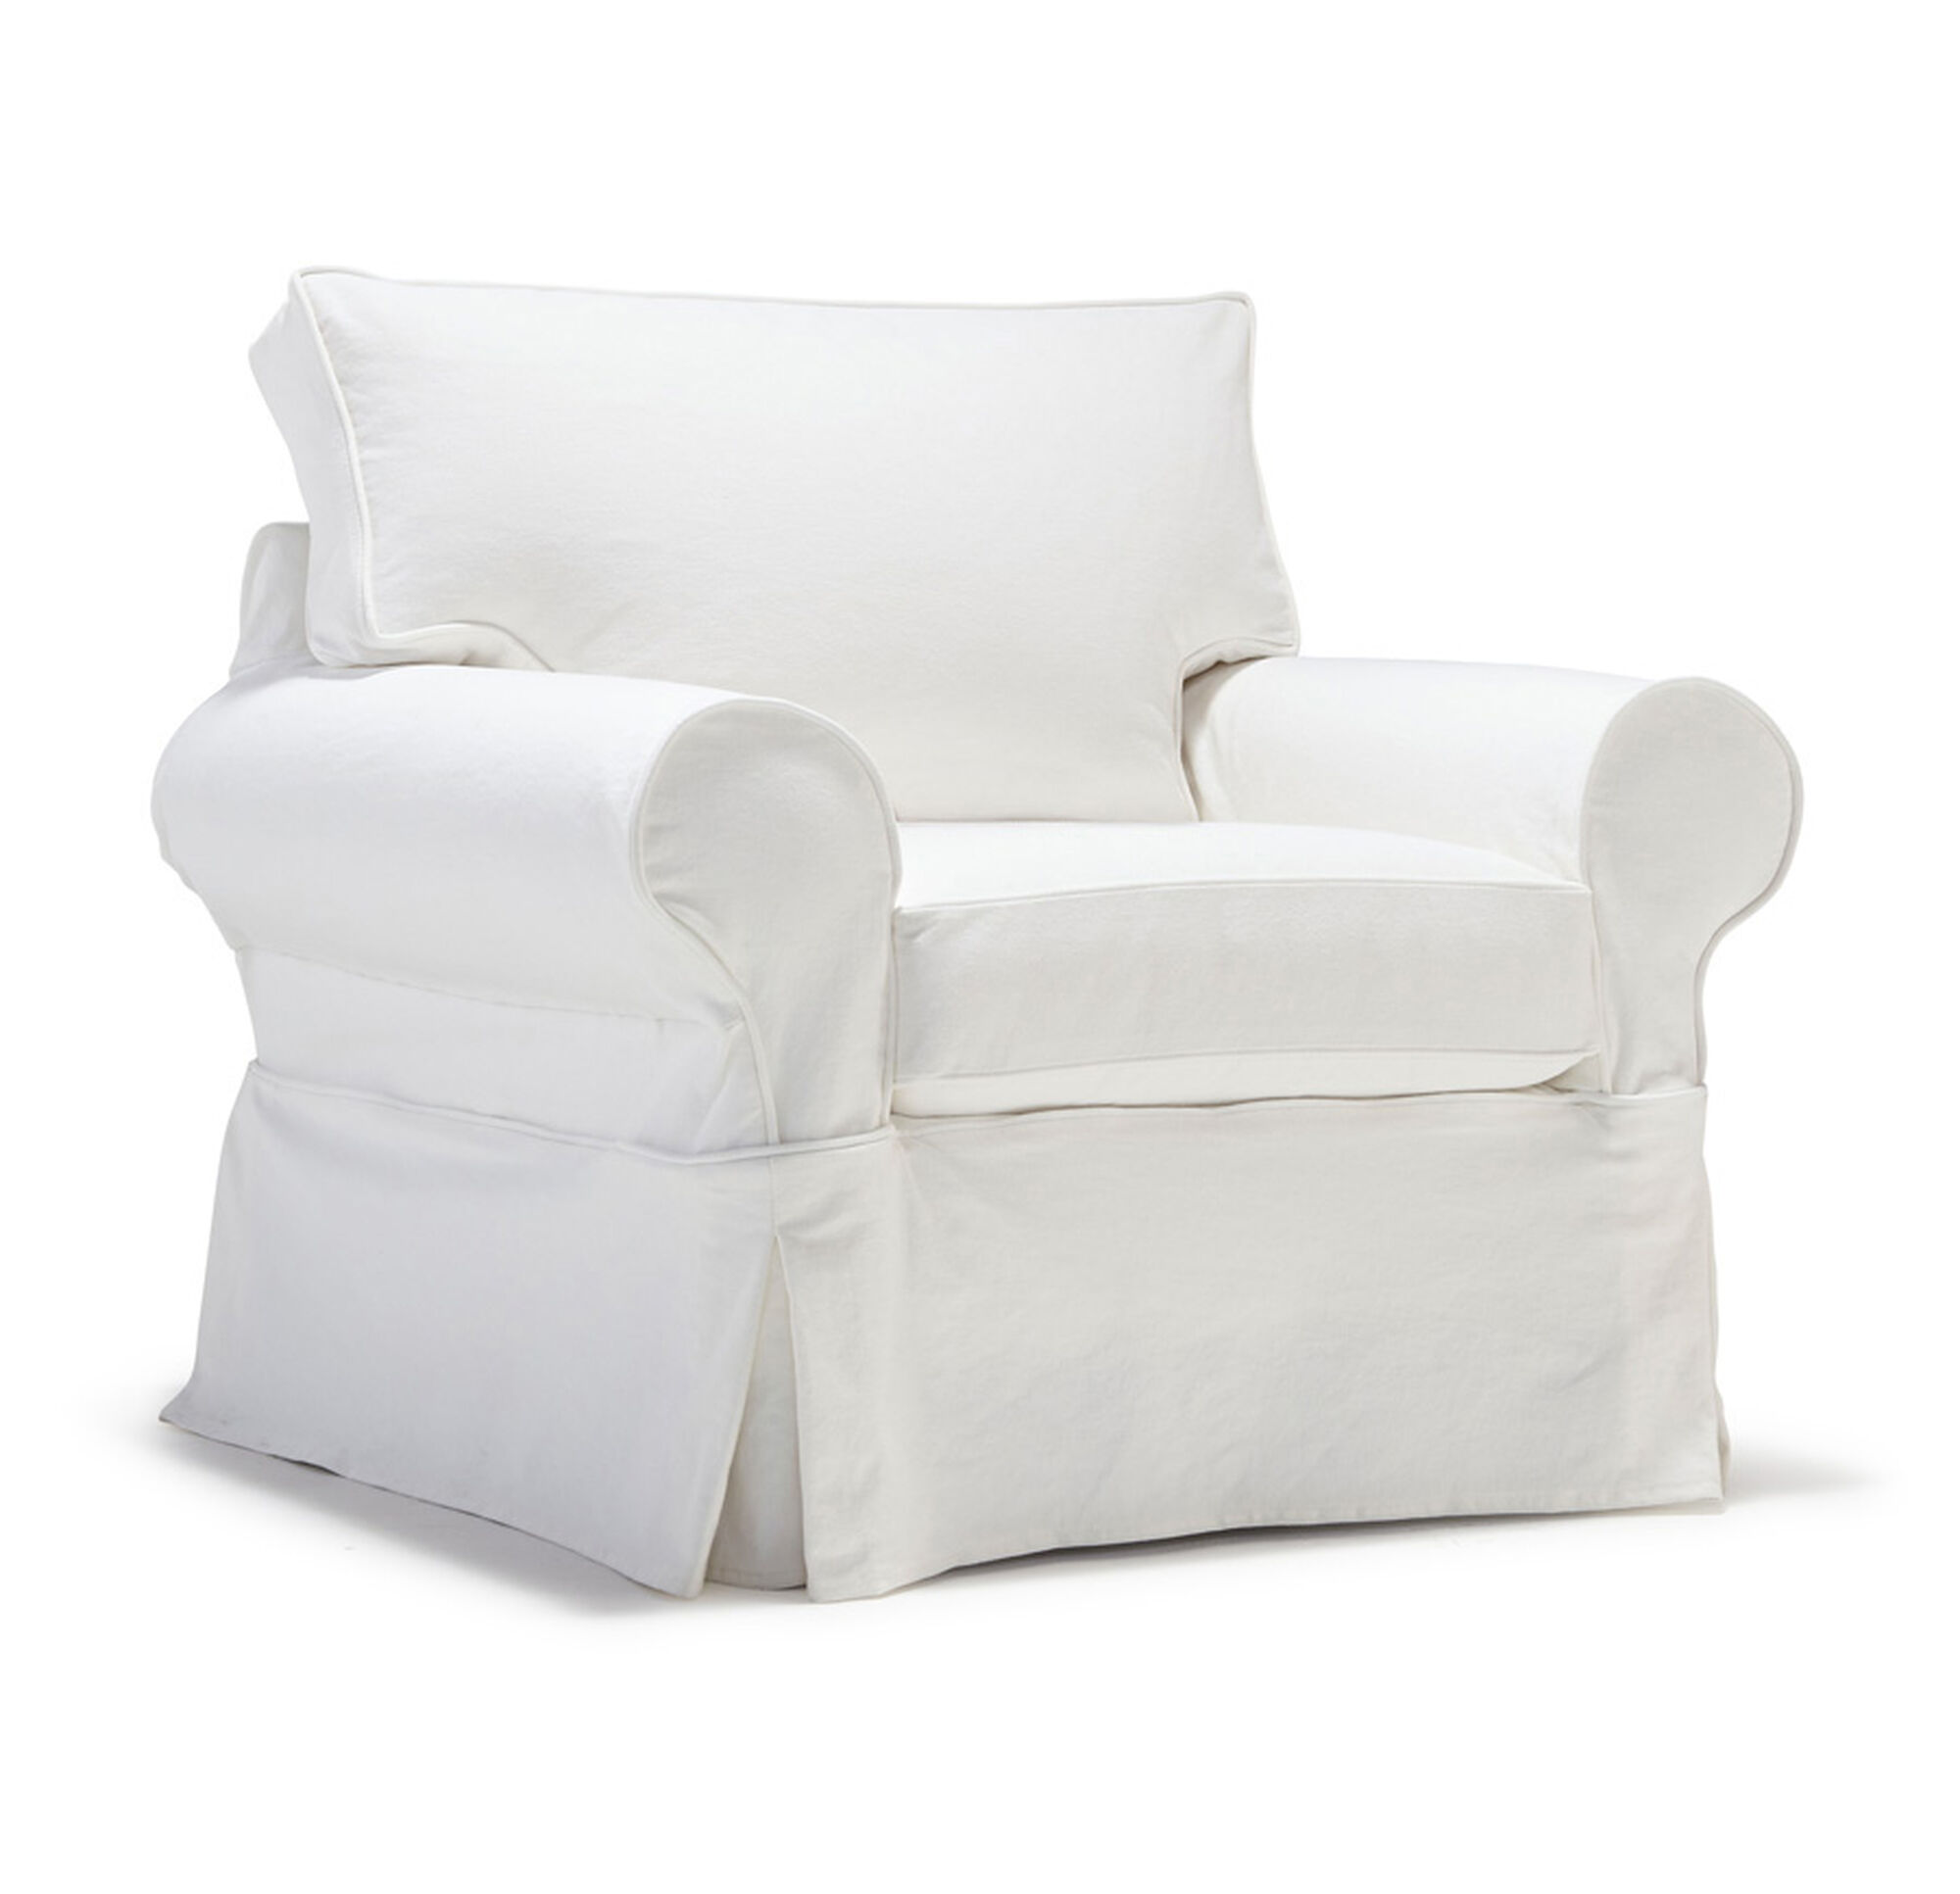 ALEXA II SLIPCOVER CHAIR